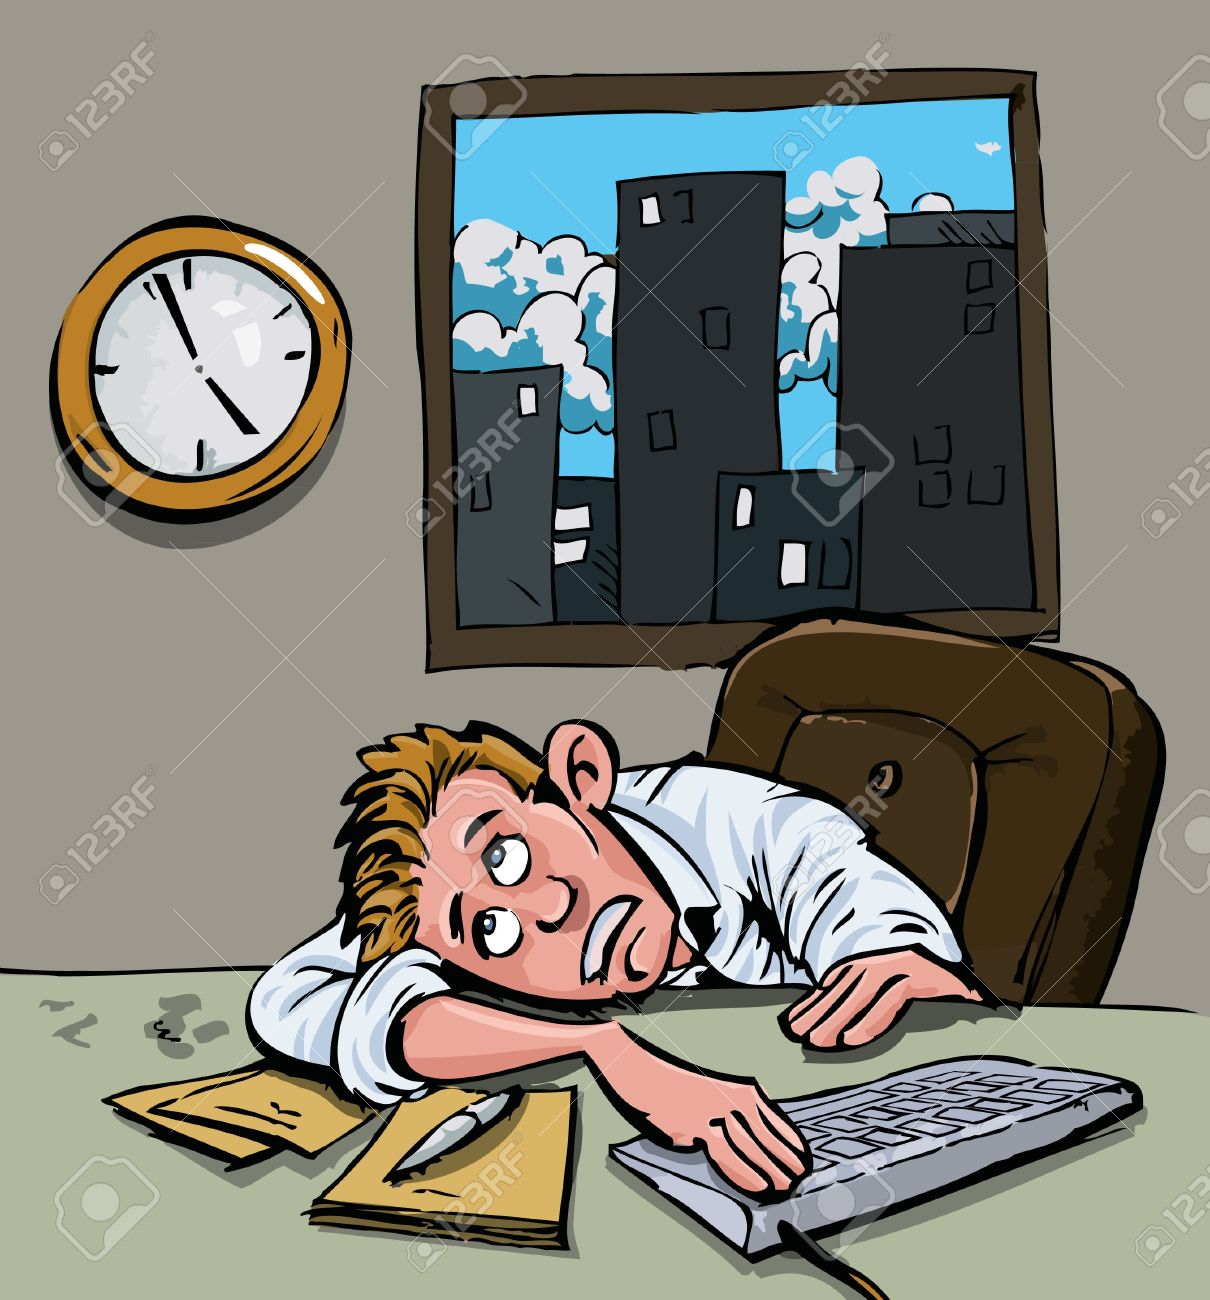 Waiting with clock clipart svg freeuse download Cartoon Of A Man Waiting For Home Time. He Stares At The Clock ... svg freeuse download